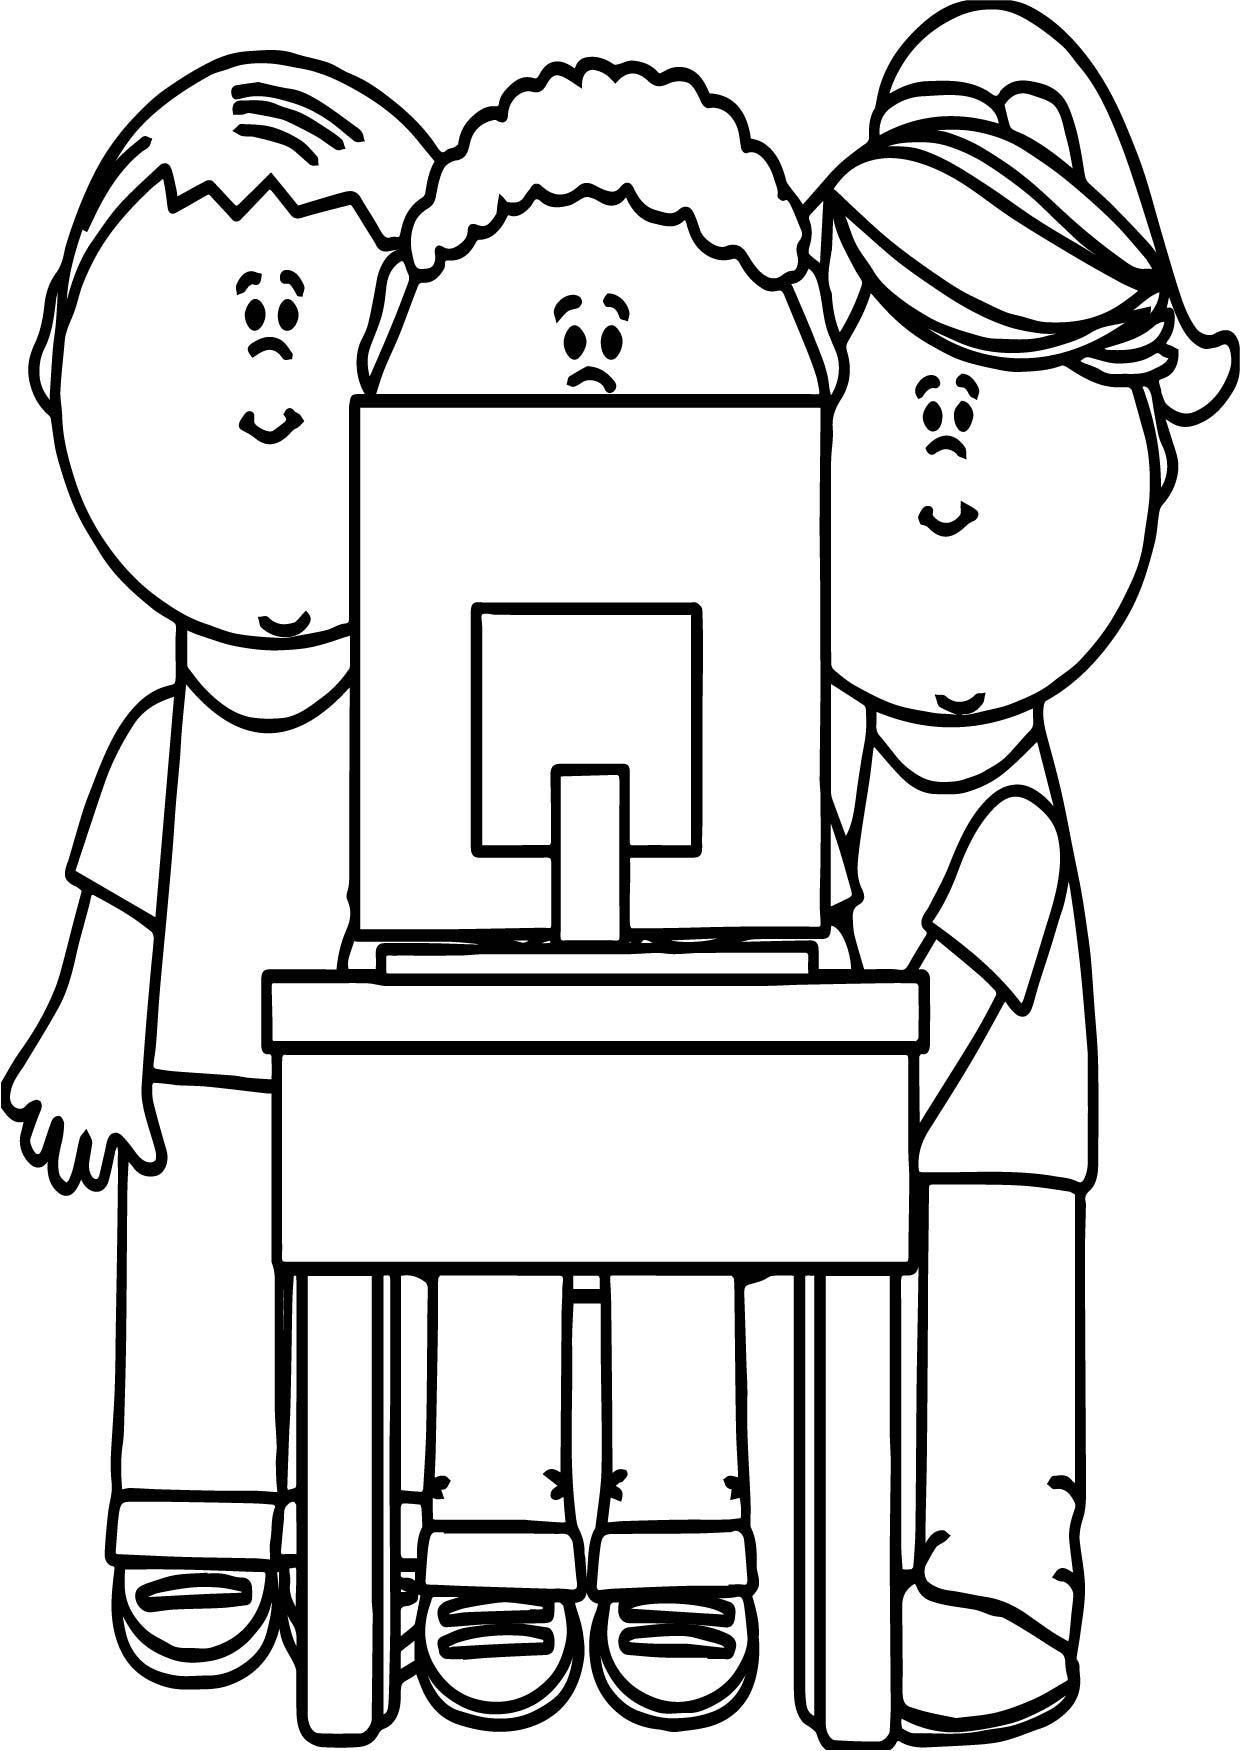 Kids Playing Computer Games Coloring Page | Wecoloringpage.com